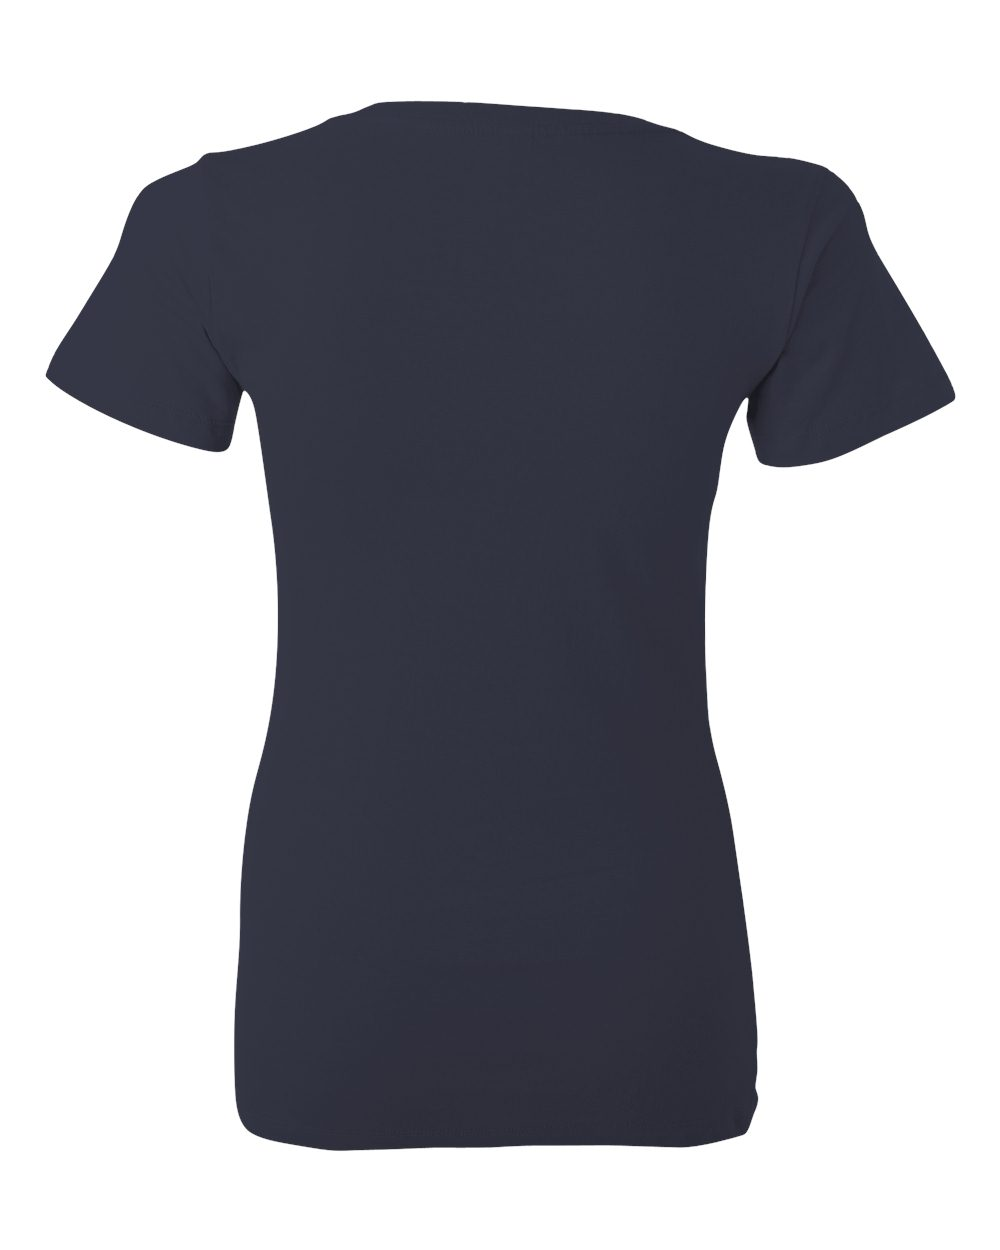 Bella-Canvas-Women-039-s-Jersey-Short-Sleeve-Deep-V-Neck-T-Shirt-B6035-S-2XL thumbnail 73